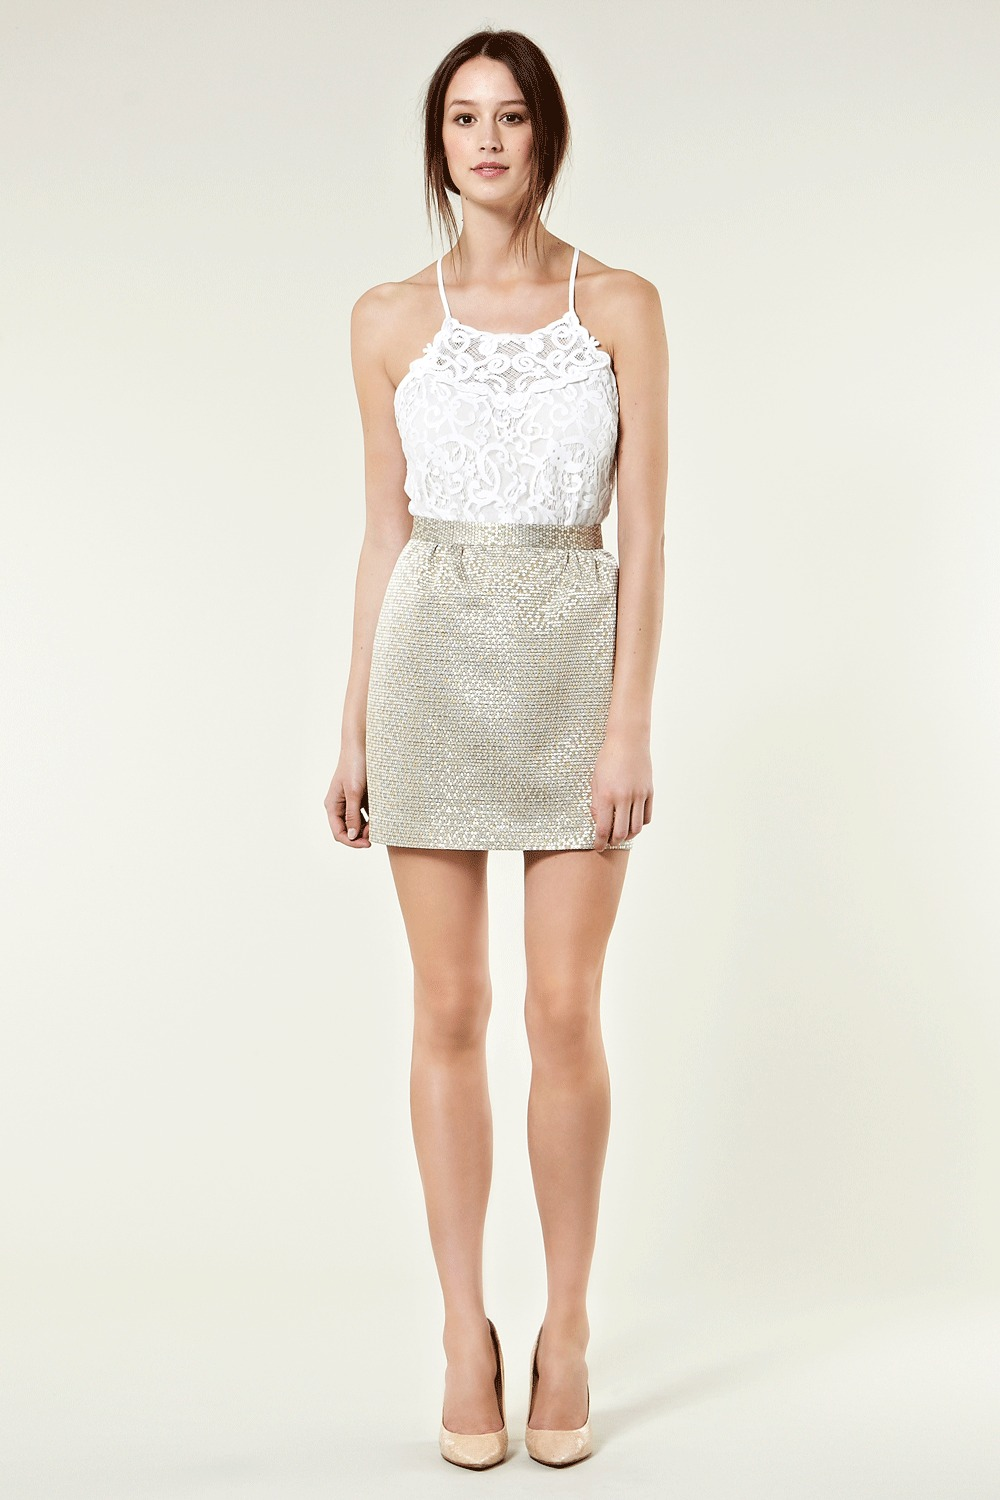 Jacquard Skirt - length: mid thigh; pattern: heavily patterned, lightly patterned, metallic, patterned/print; style: pencil; fit: tailored/fitted; waist detail: fitted waist, narrow waistband; waist: high rise; hip detail: fitted at hip; predominant colour: gold; occasions: casual, evening, work; fibres: polyester/polyamide - mix; material texture: metallic; trends: aquatic; pattern type: fabric; pattern size: small & light